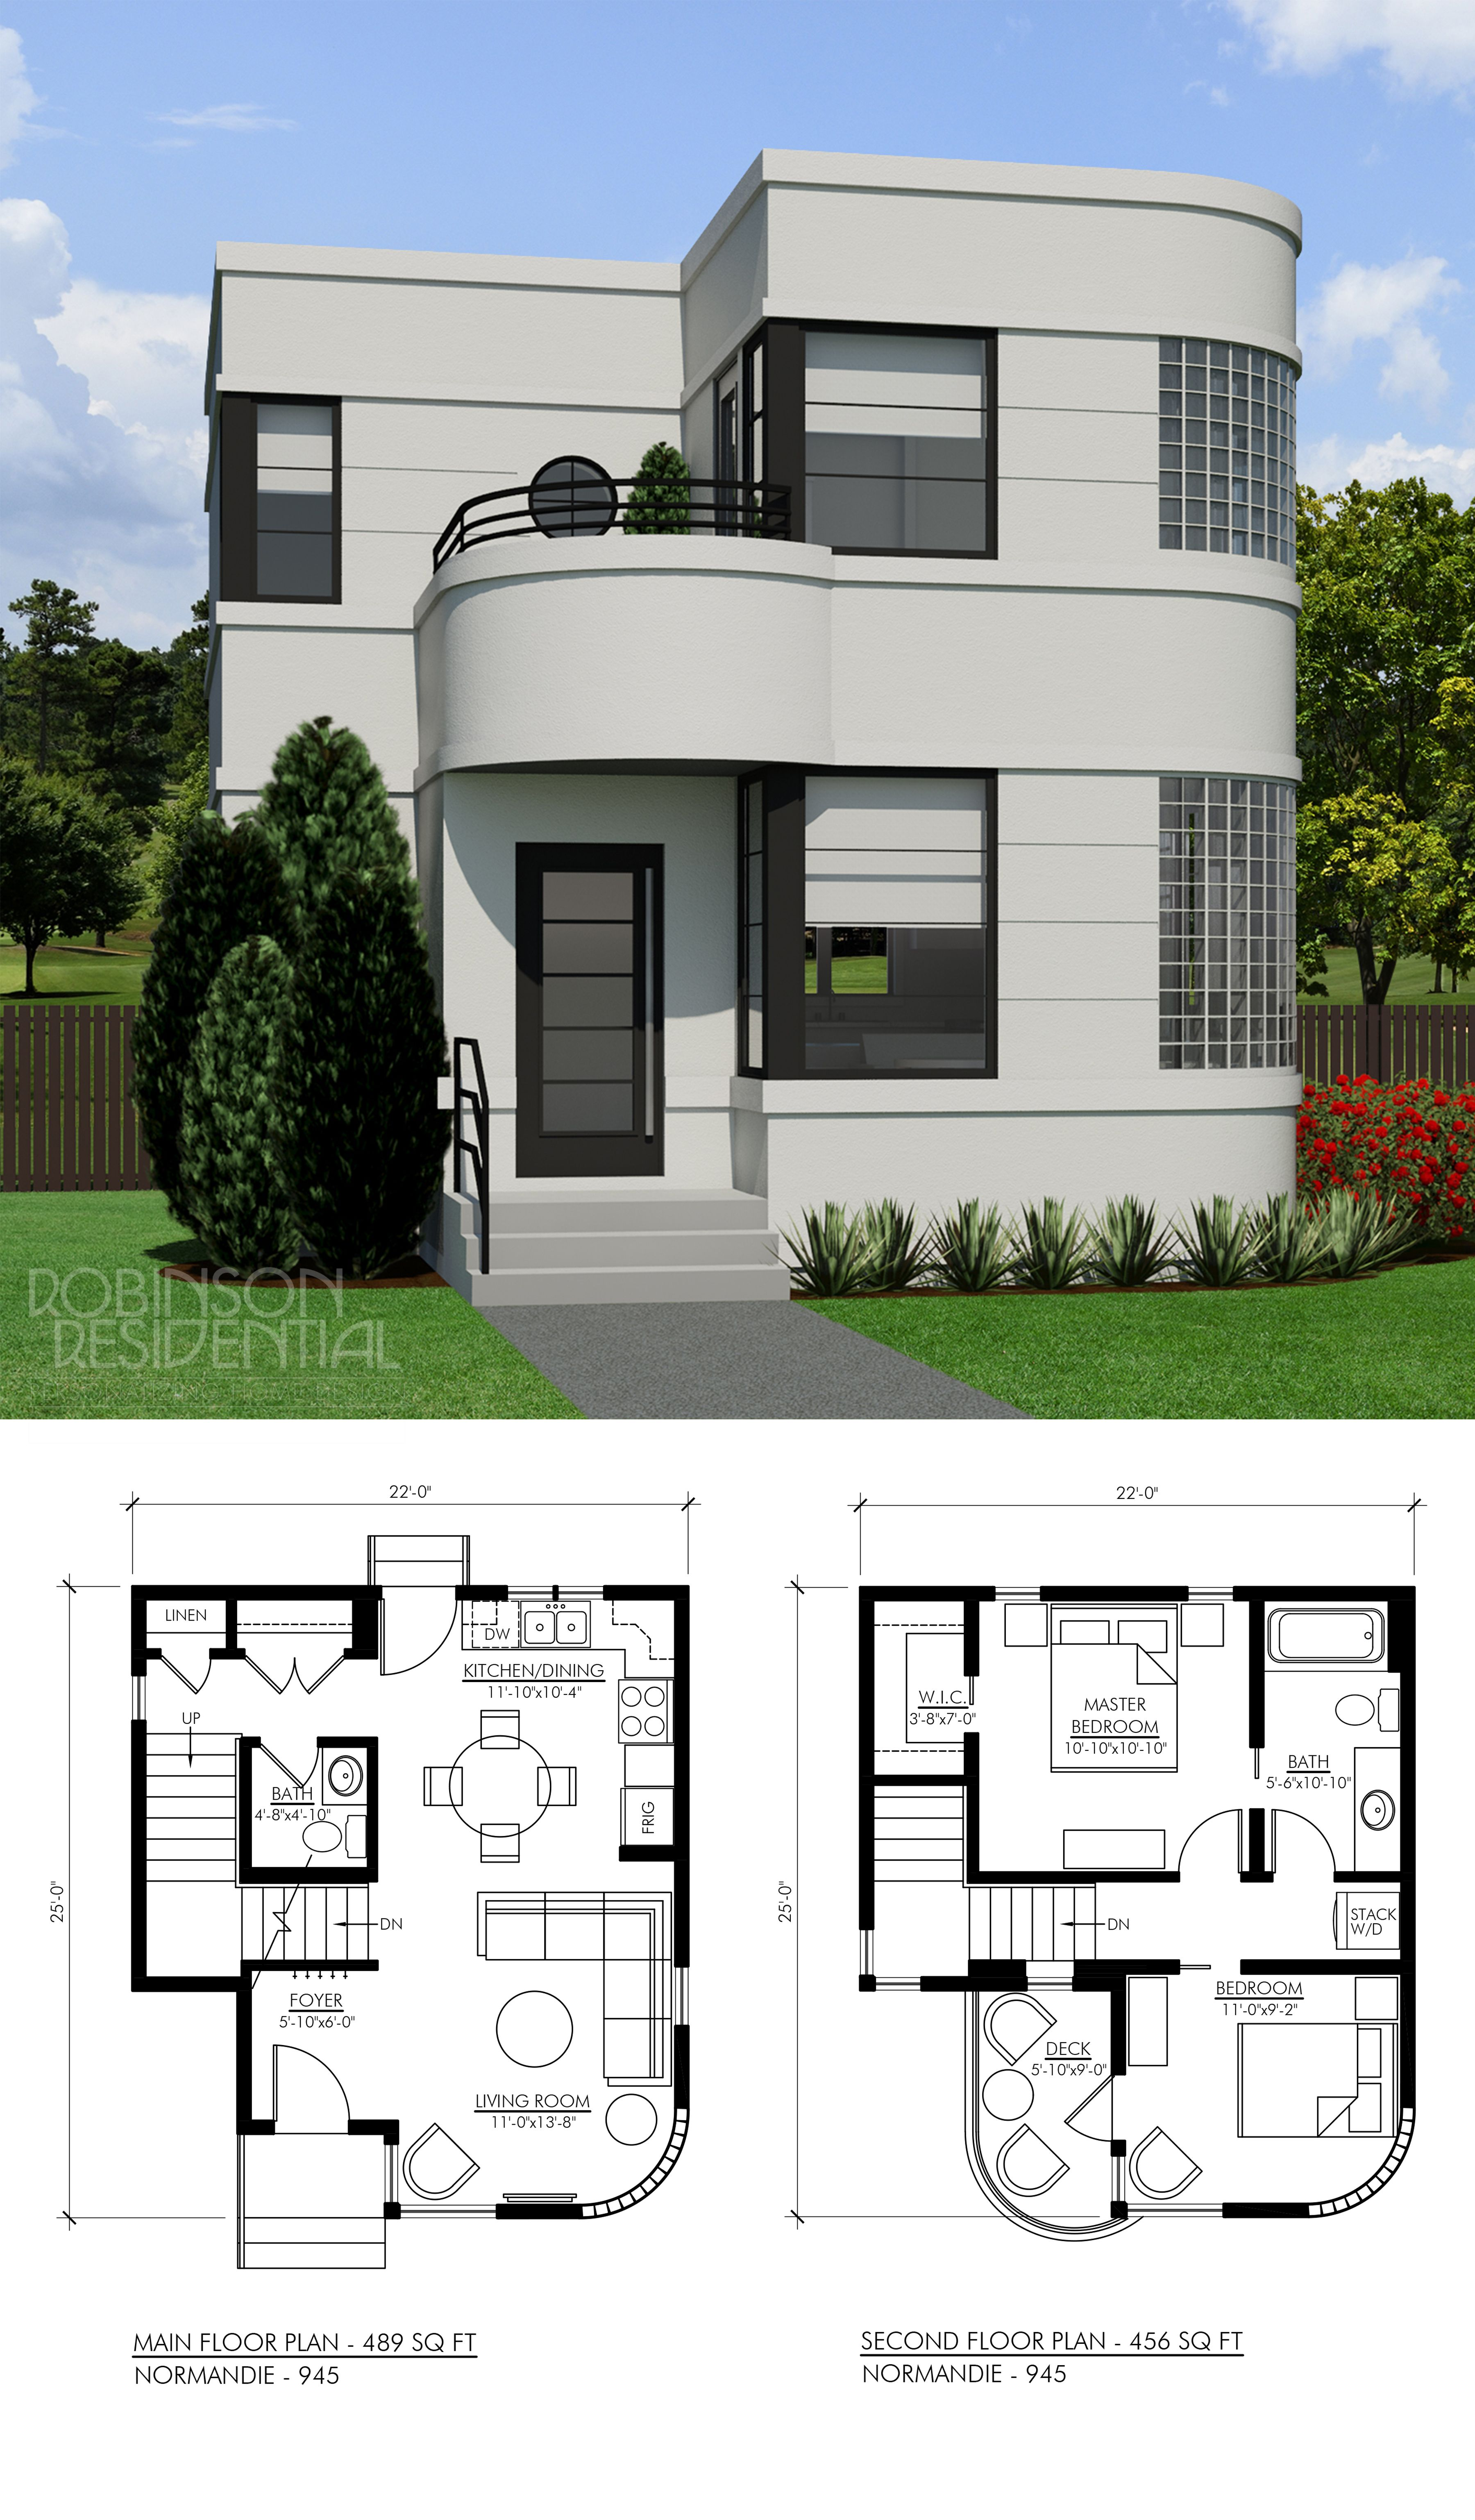 Modernist House Plans Contemporary Normandie 945 In 2019 New House Design